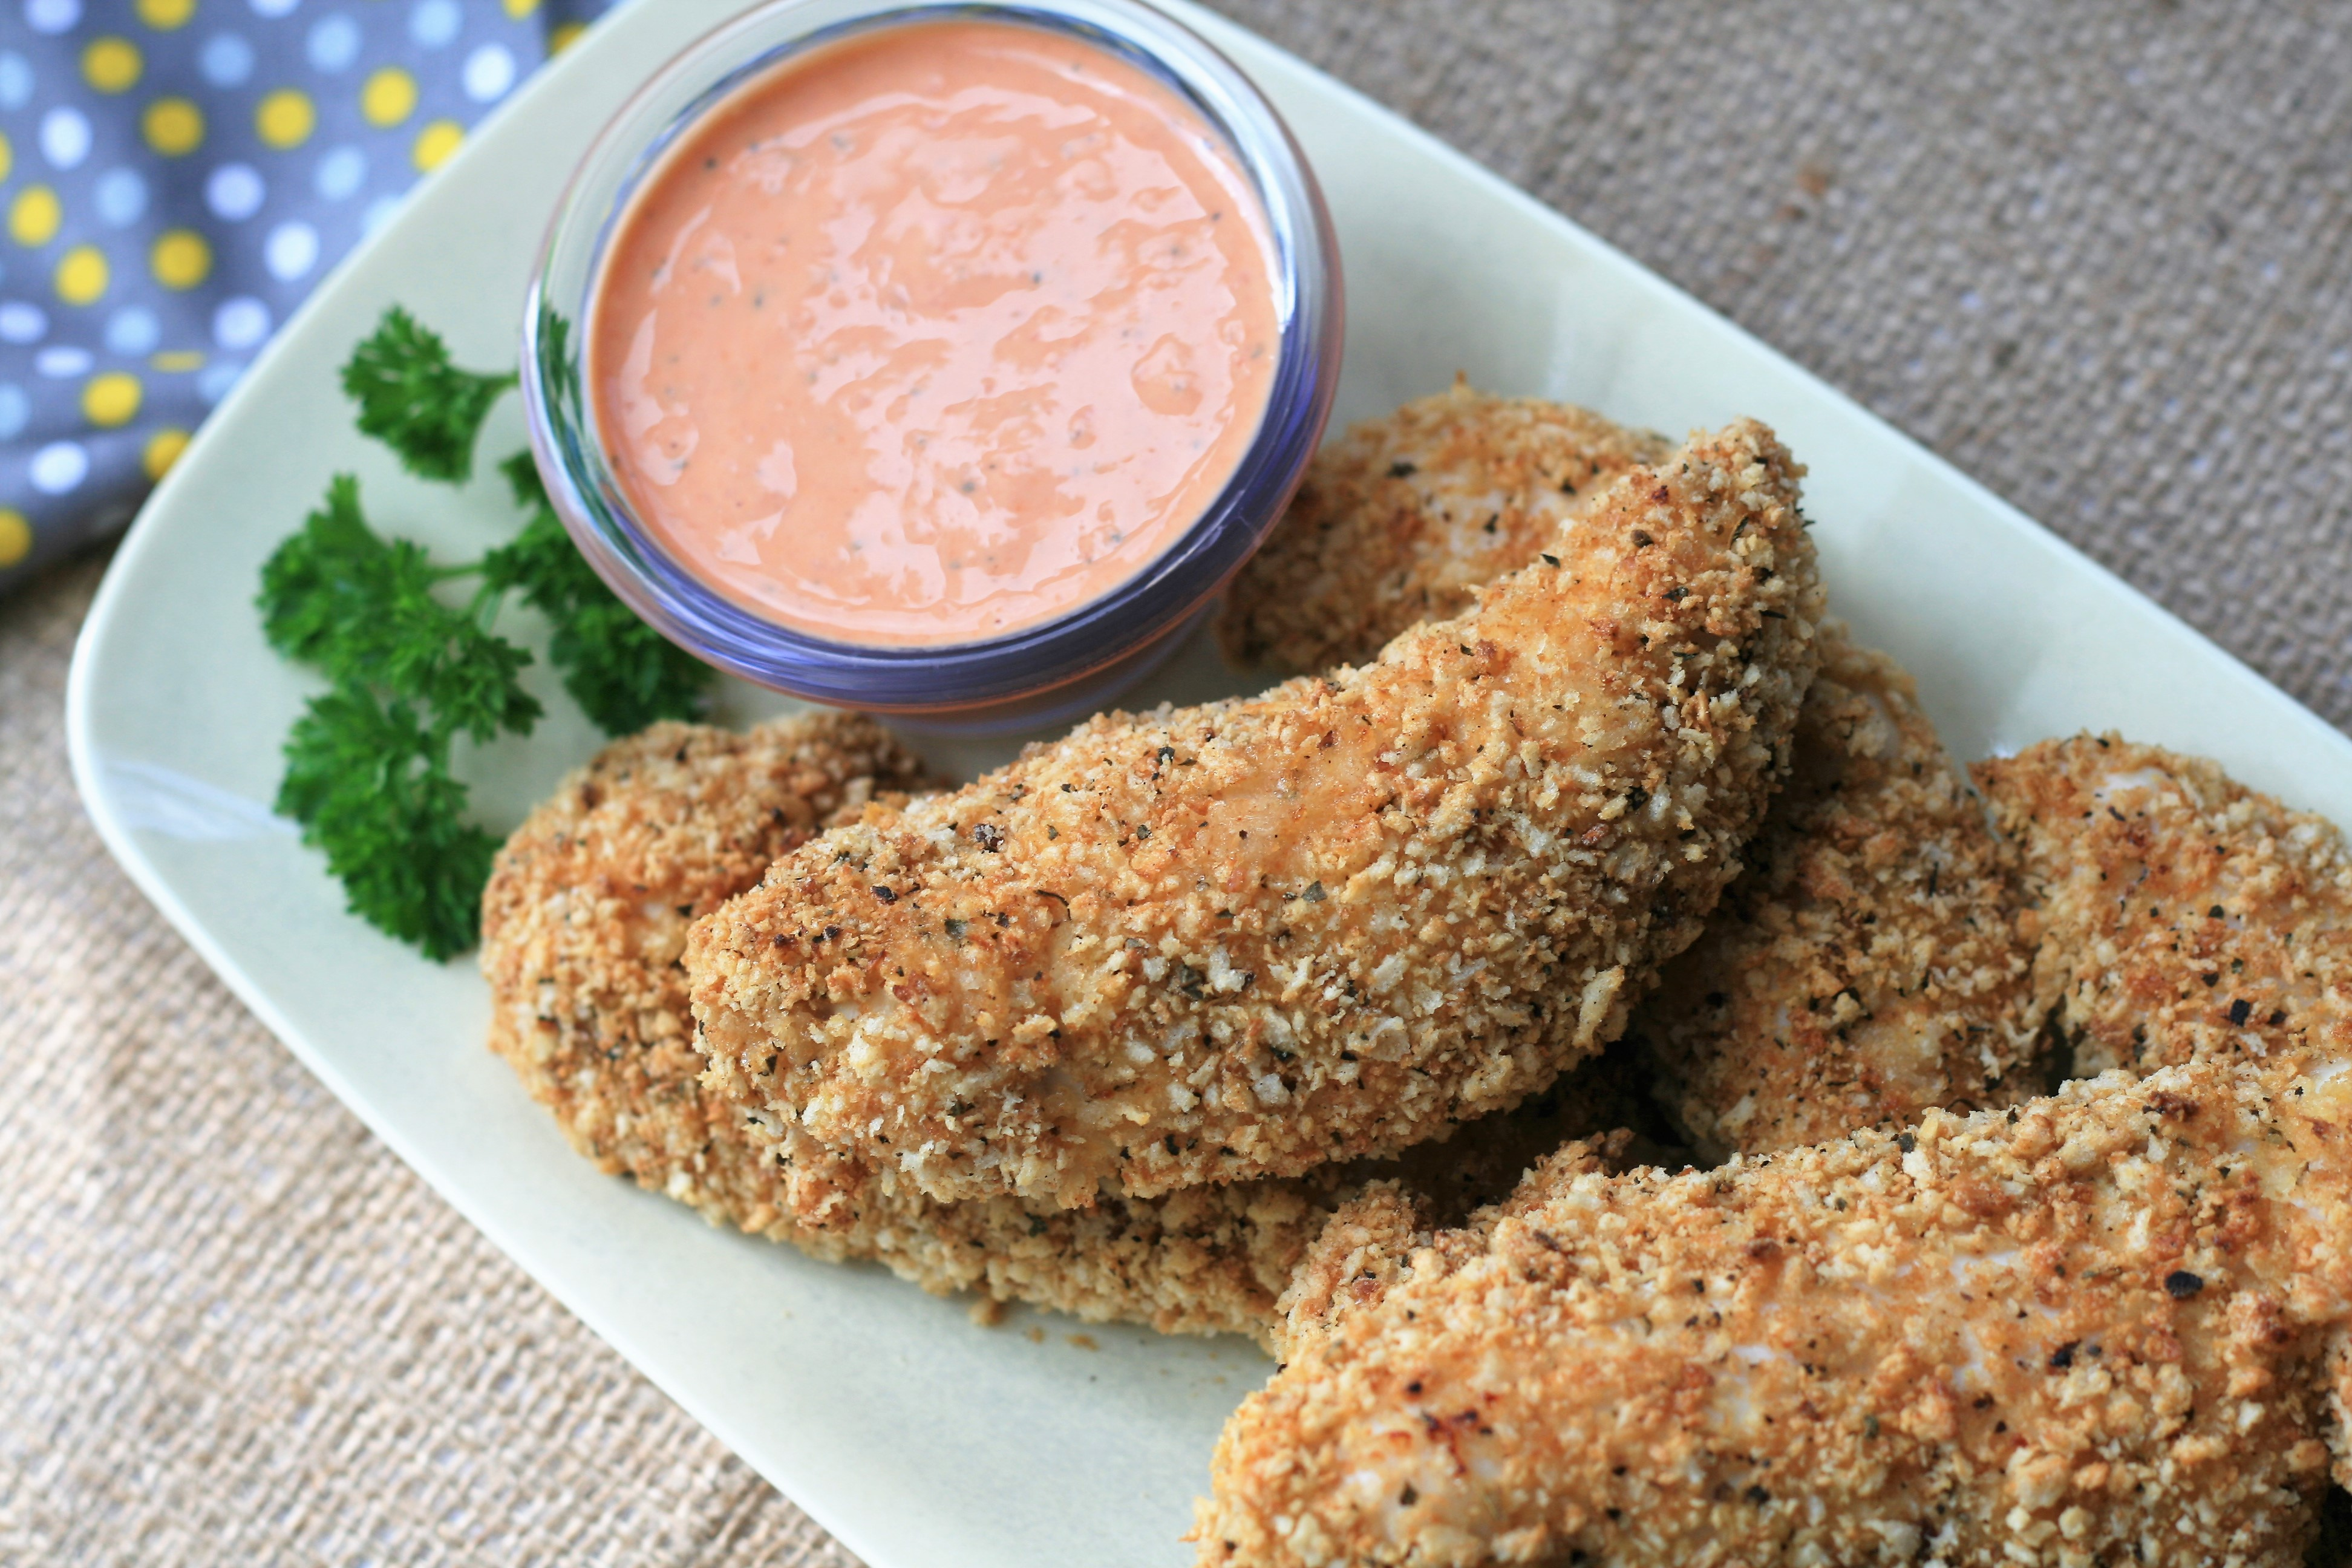 Baked Panko-Crusted Chicken Tenders